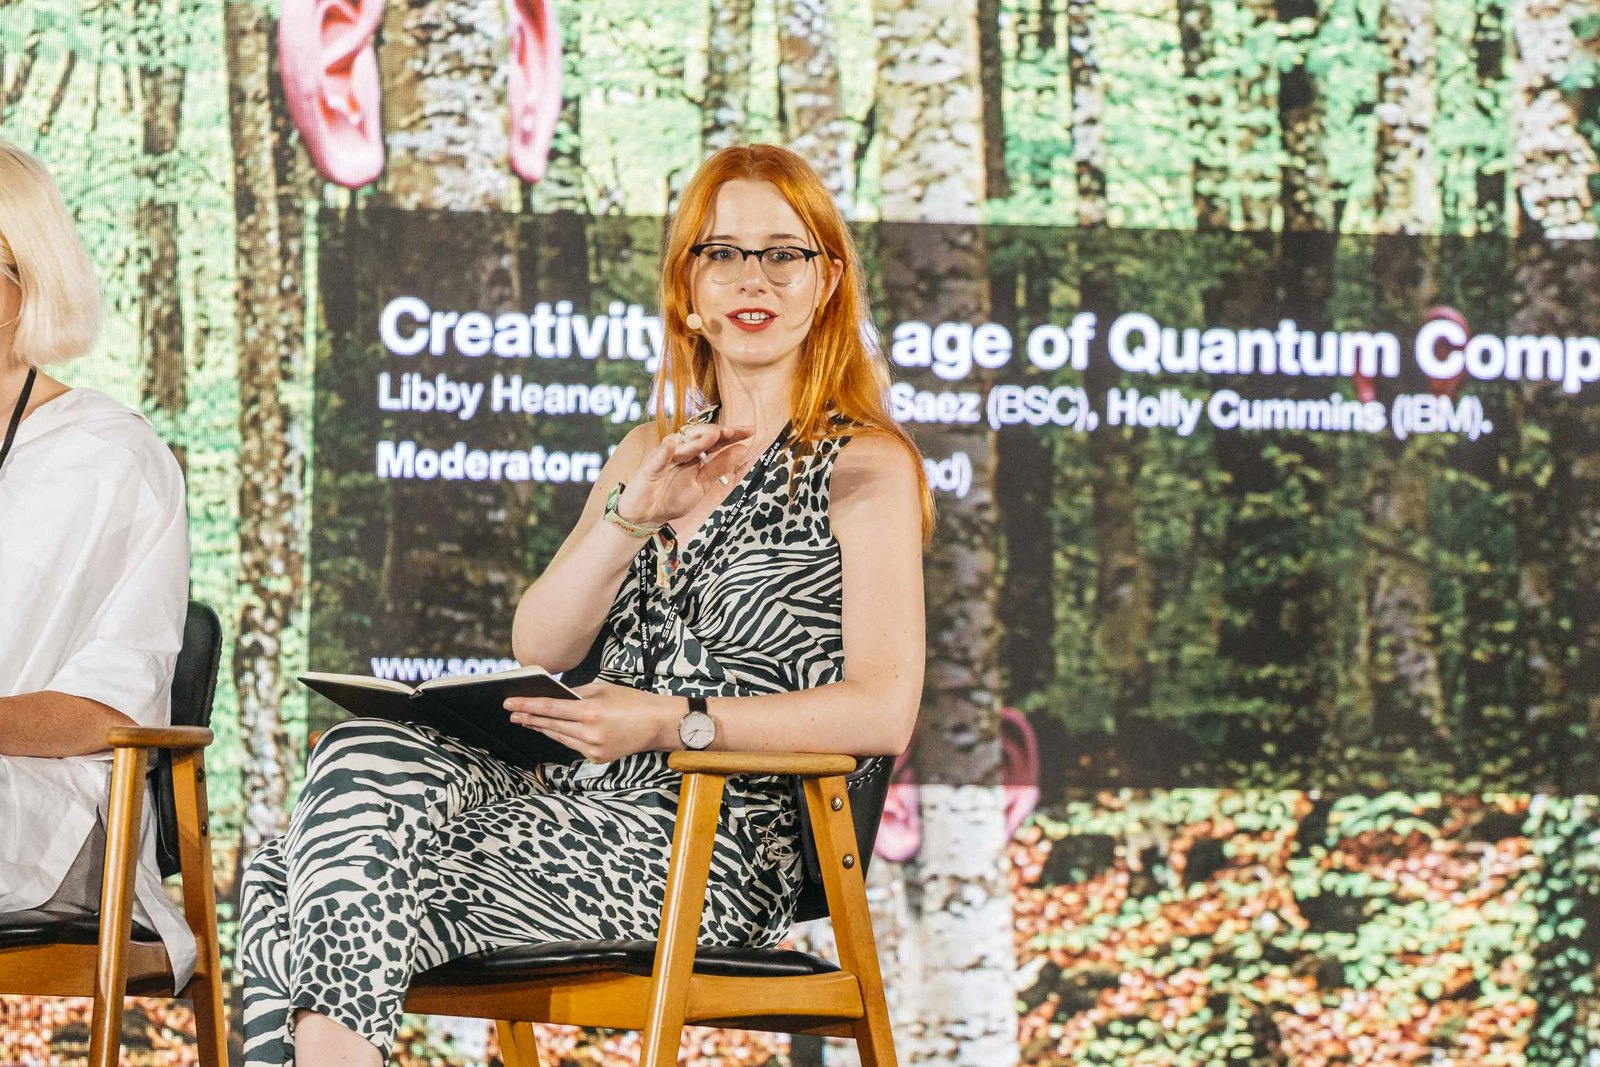 Victoria Turk (WIRED), with Creativity in the age of quantum computing